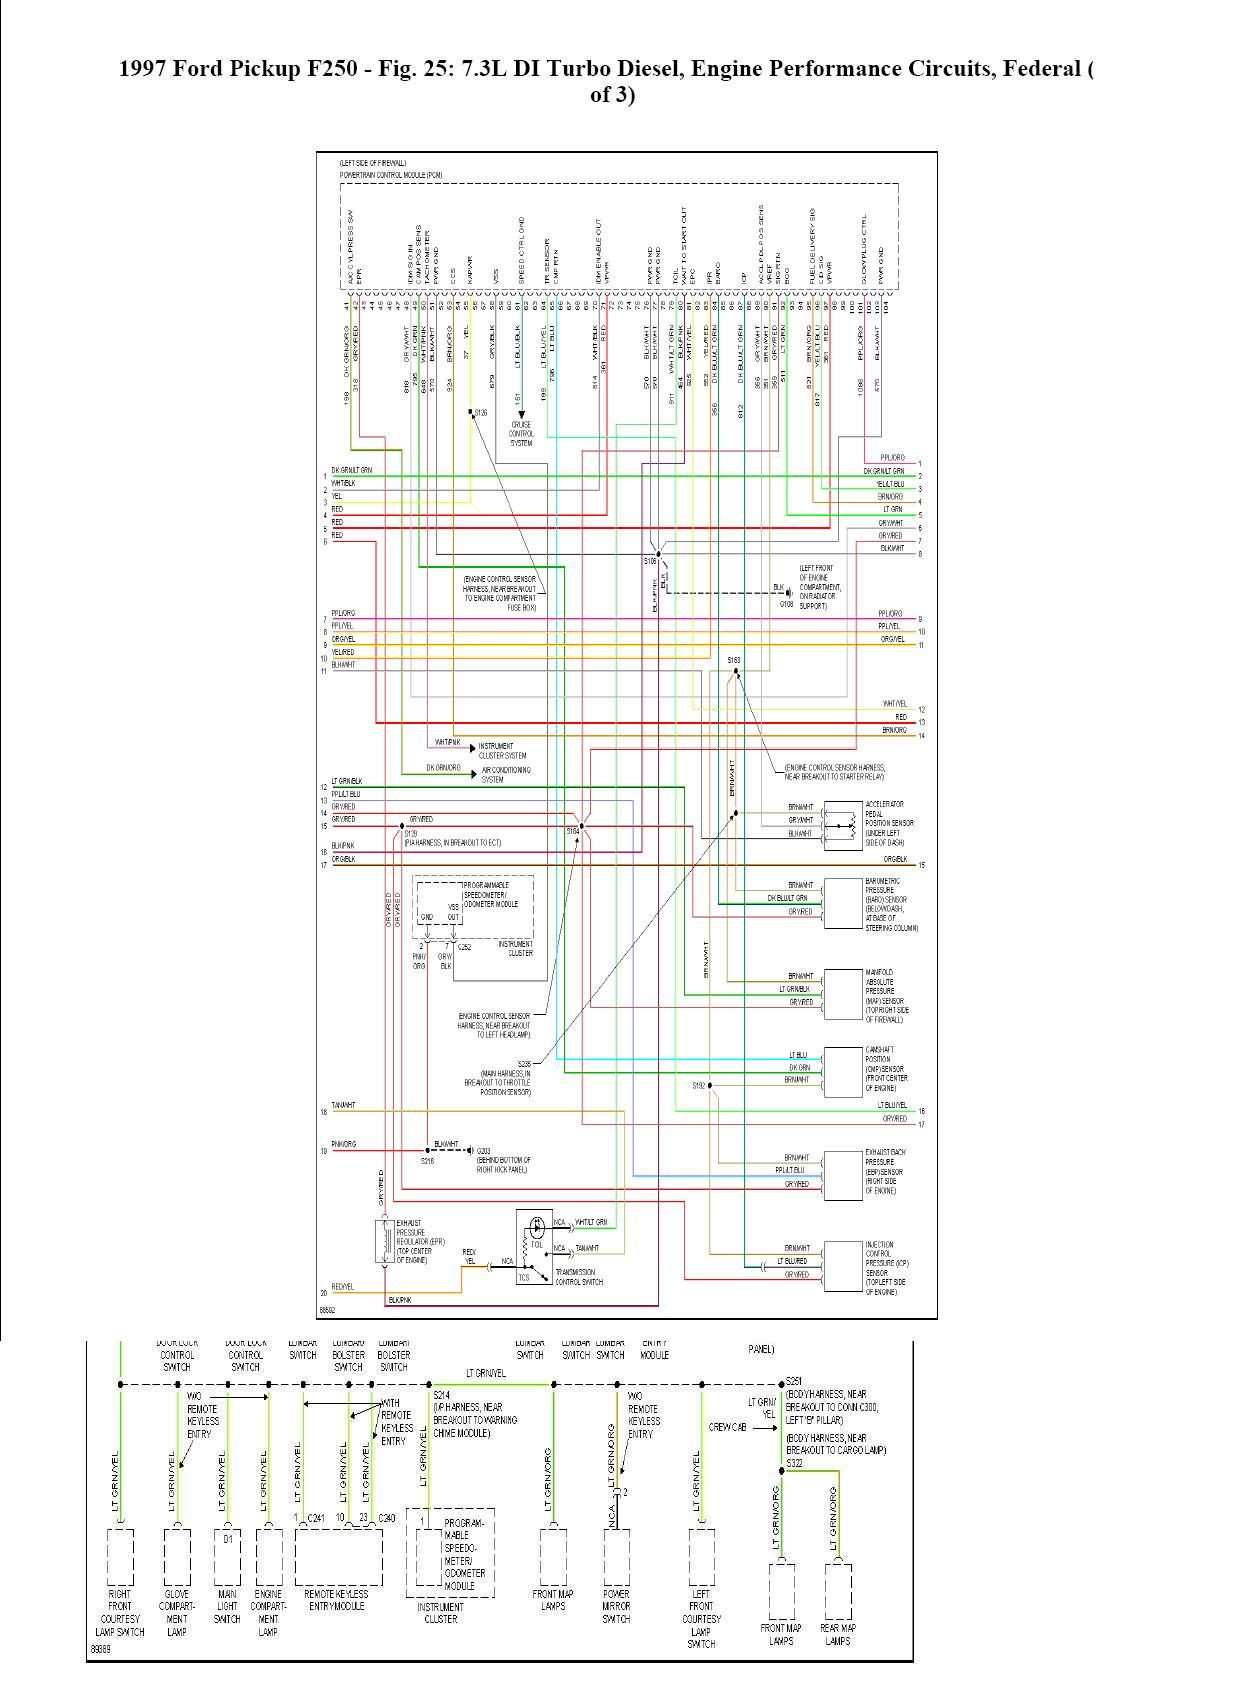 [SCHEMATICS_4CA]  complete wiring schematic ... | Ford f350, 1997 ford f350, Ford | 7 Pin Trailer Plug Wiring Diagram For Ford 1997 |  | Pinterest